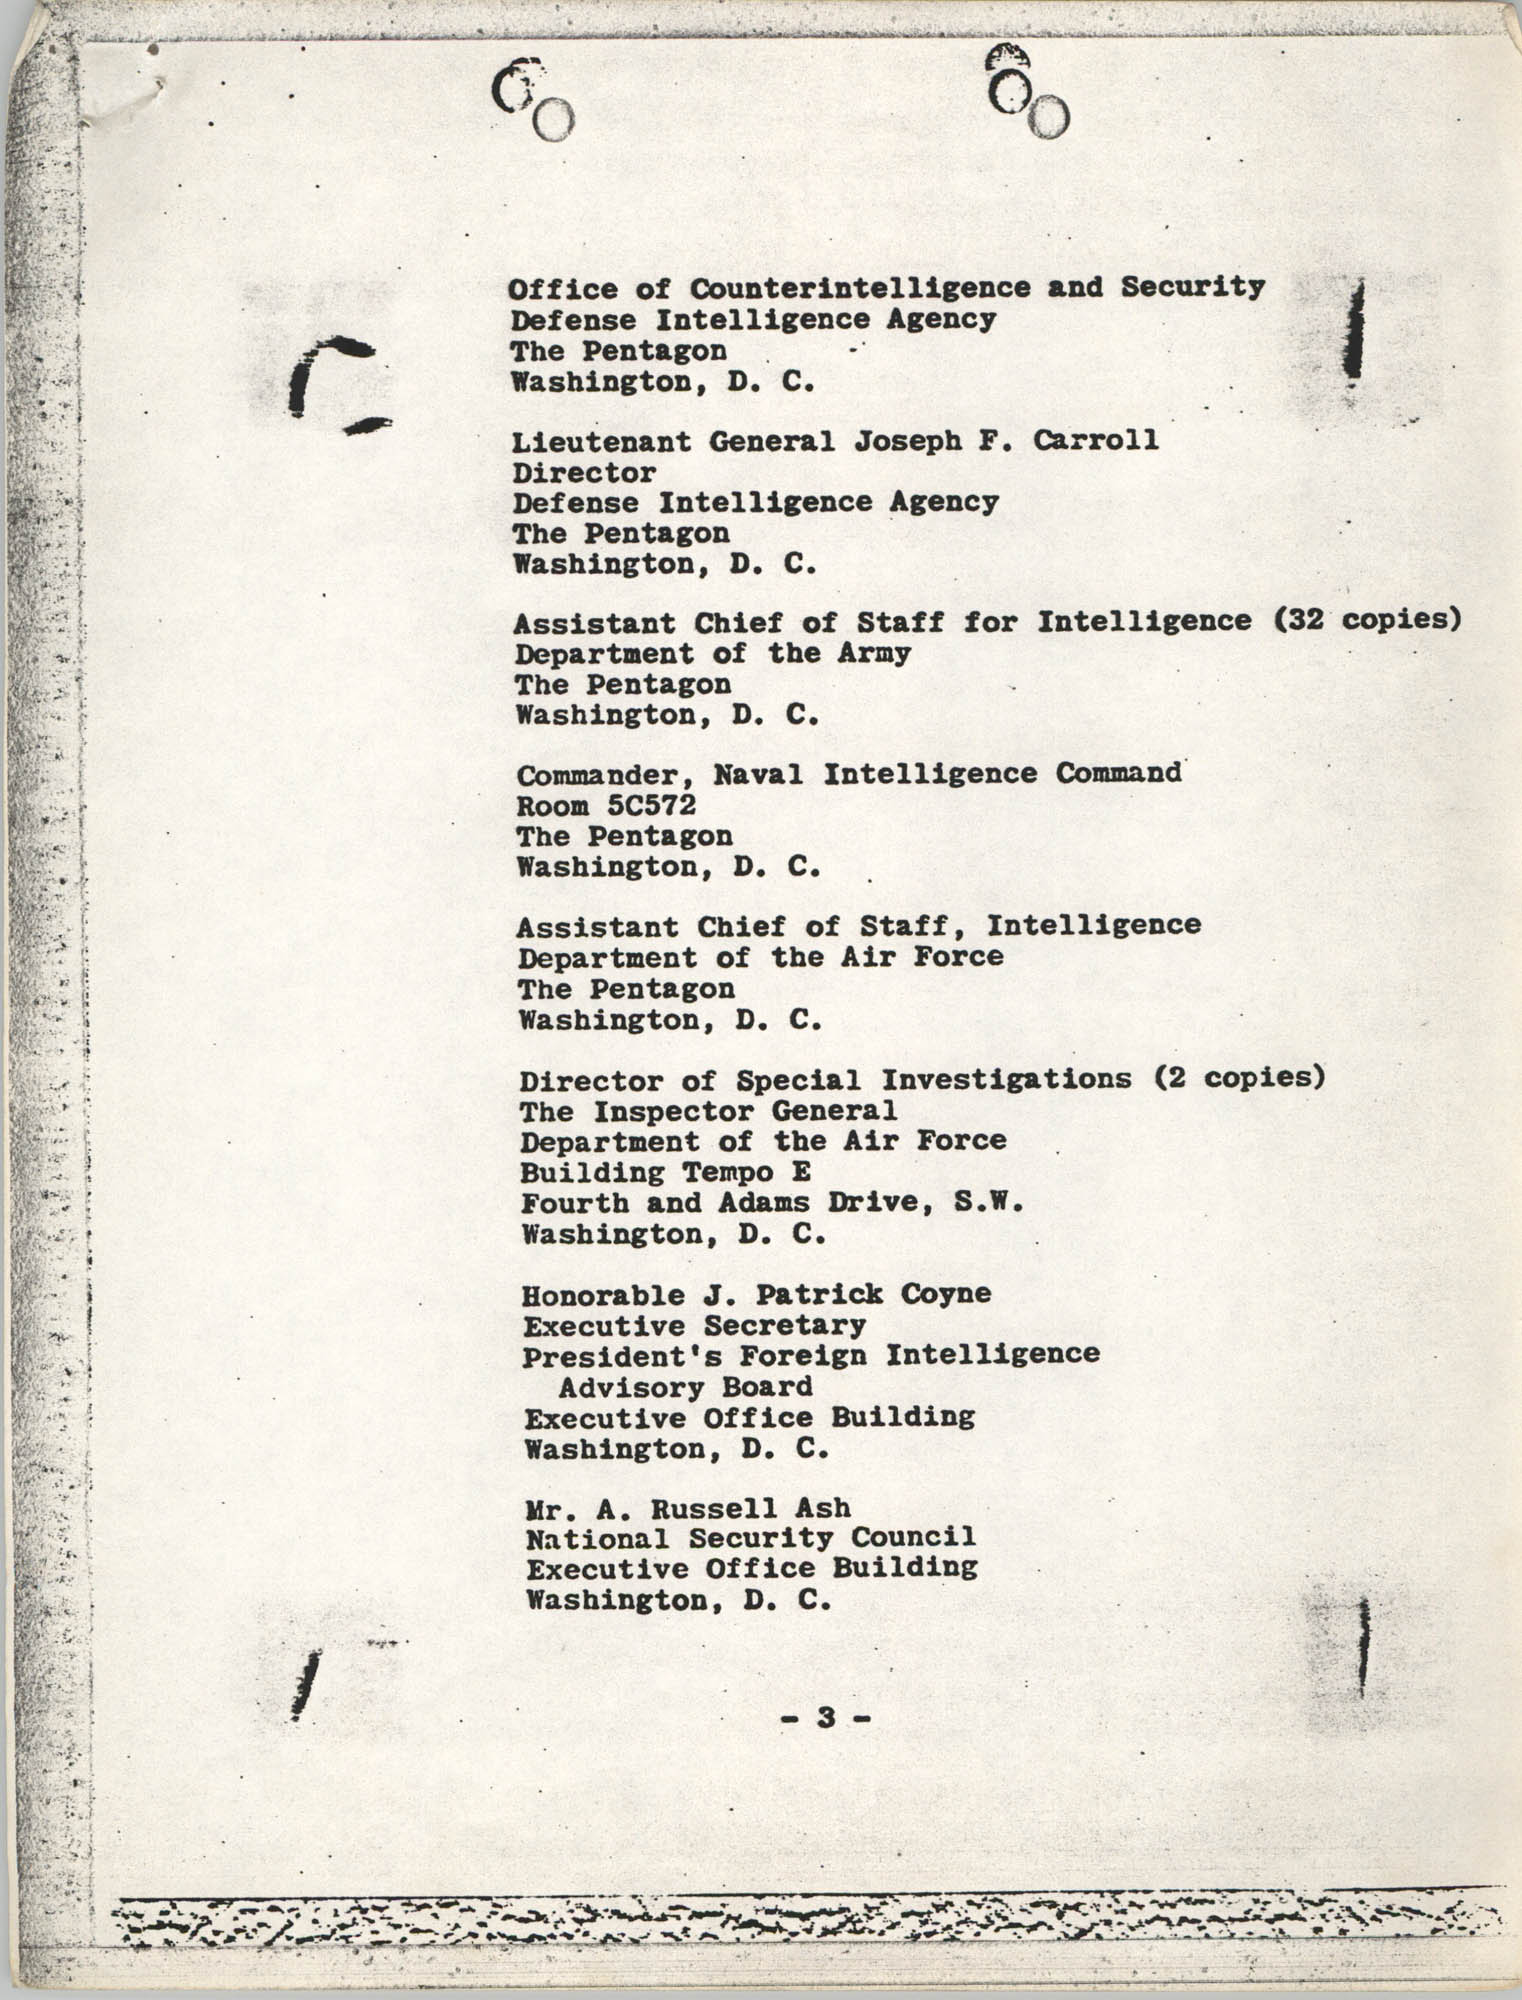 Student Nonviolent Coordinating Committee Lawsuit, Staff List Page 3